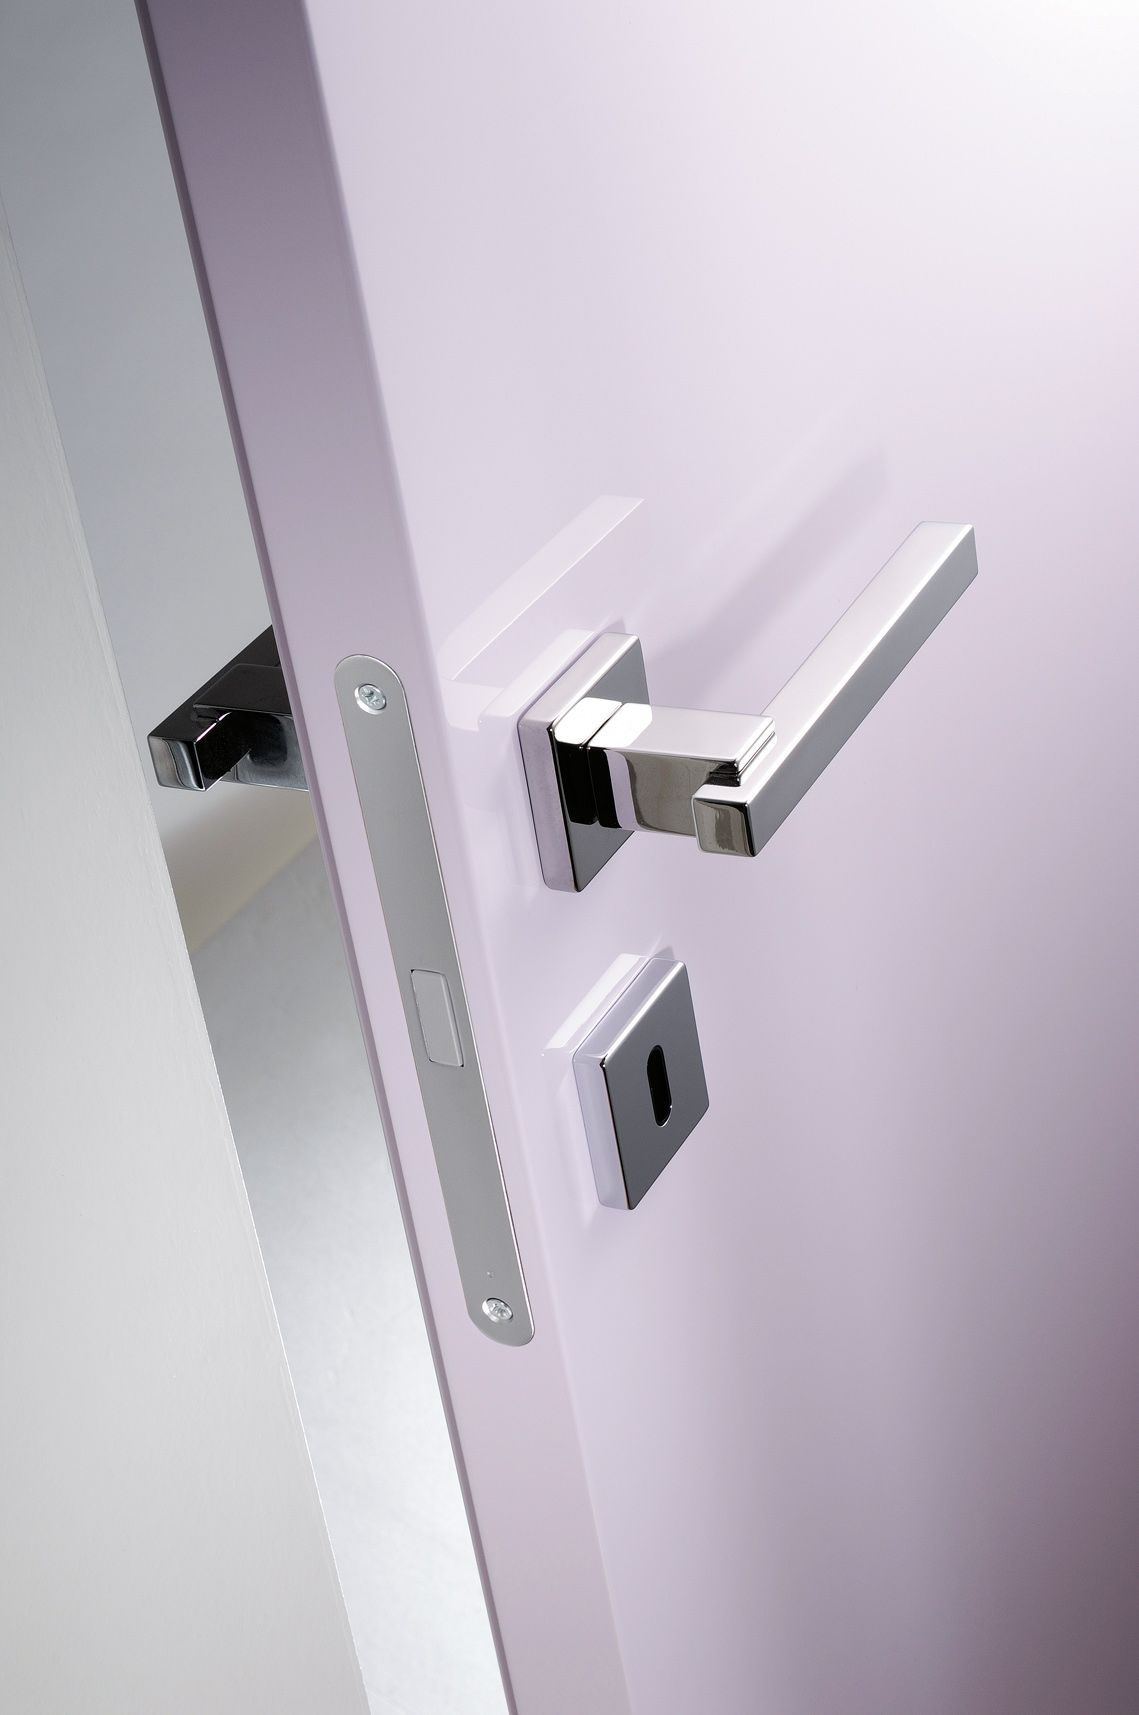 Graceful And Silent The Magnetic Lock Allows The Door To Close Through A Special Magnet When The Door Is Open The Latch B Door Latch Latches The Door Is Open